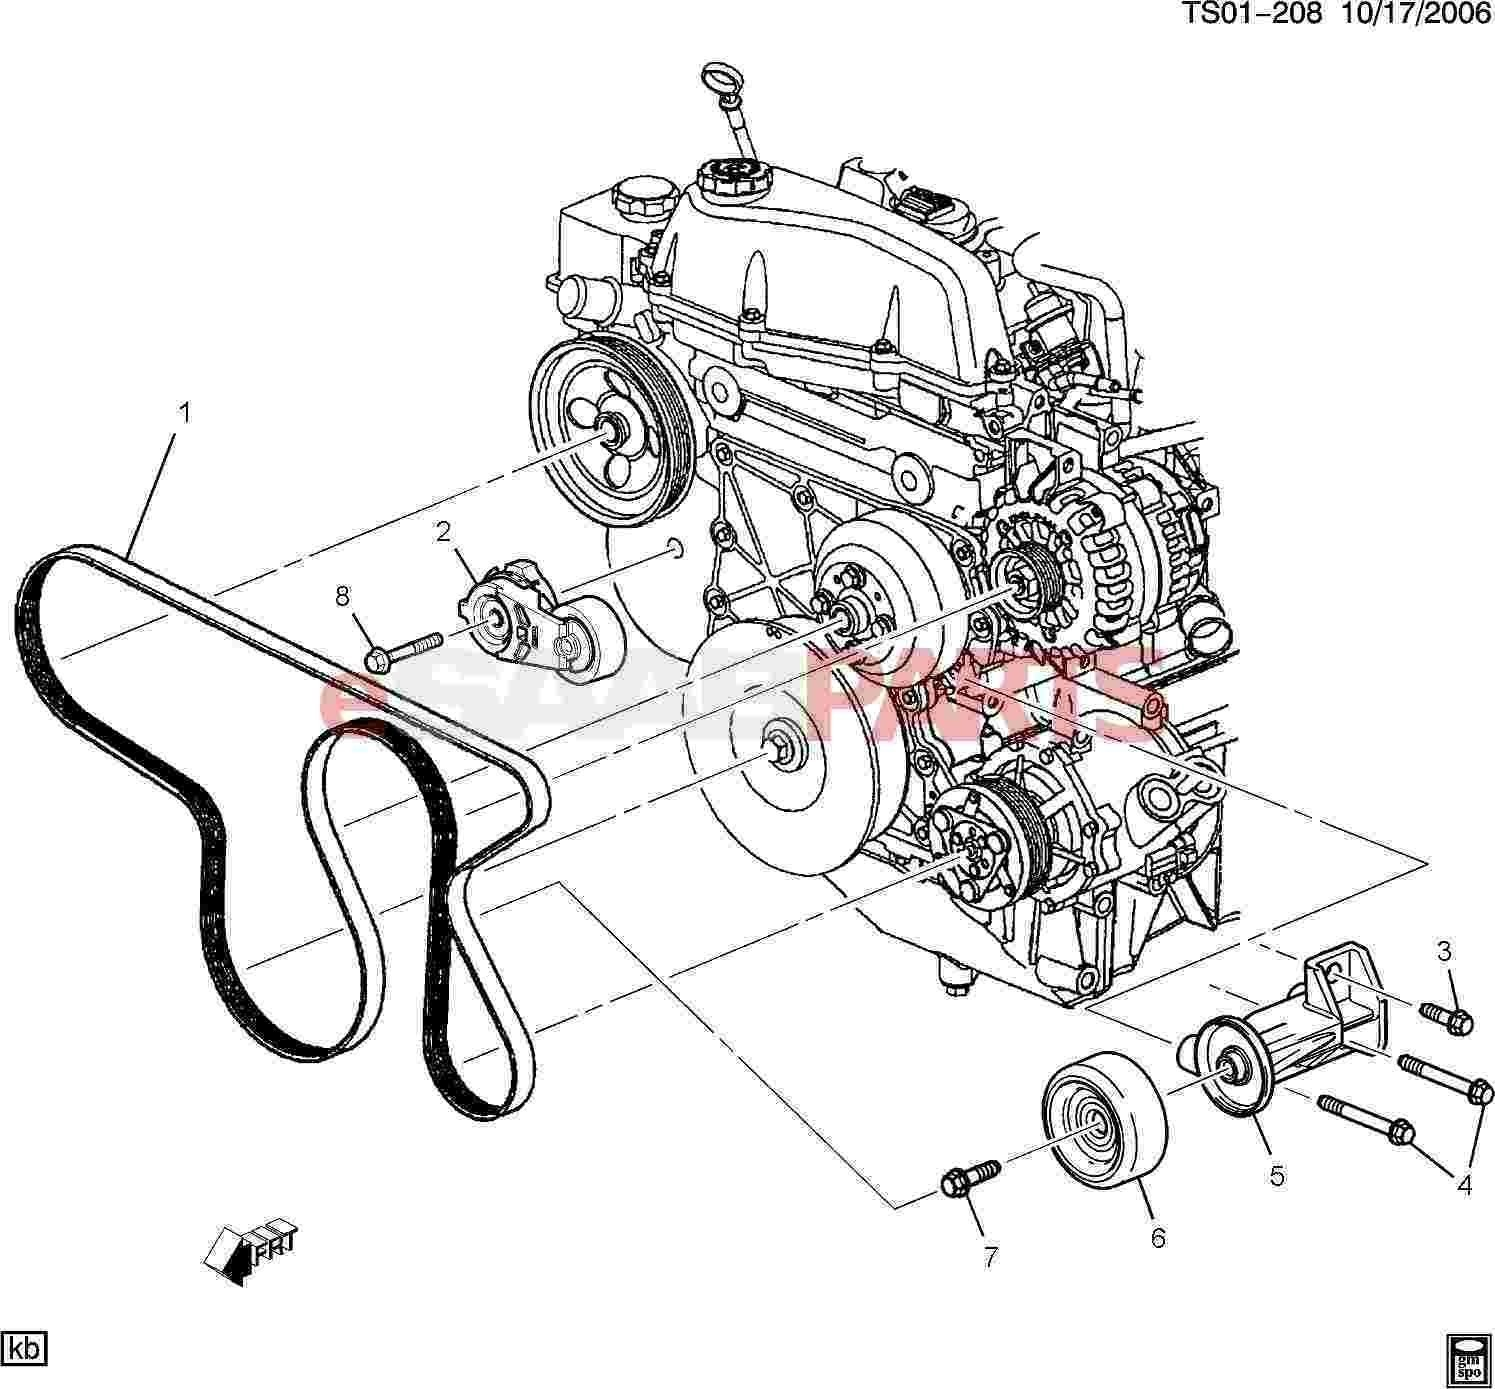 Car Alternator Diagram 1997 toyota Corolla Engine Diagram Car Water Pump Diagram Water Pump Of Car Alternator Diagram